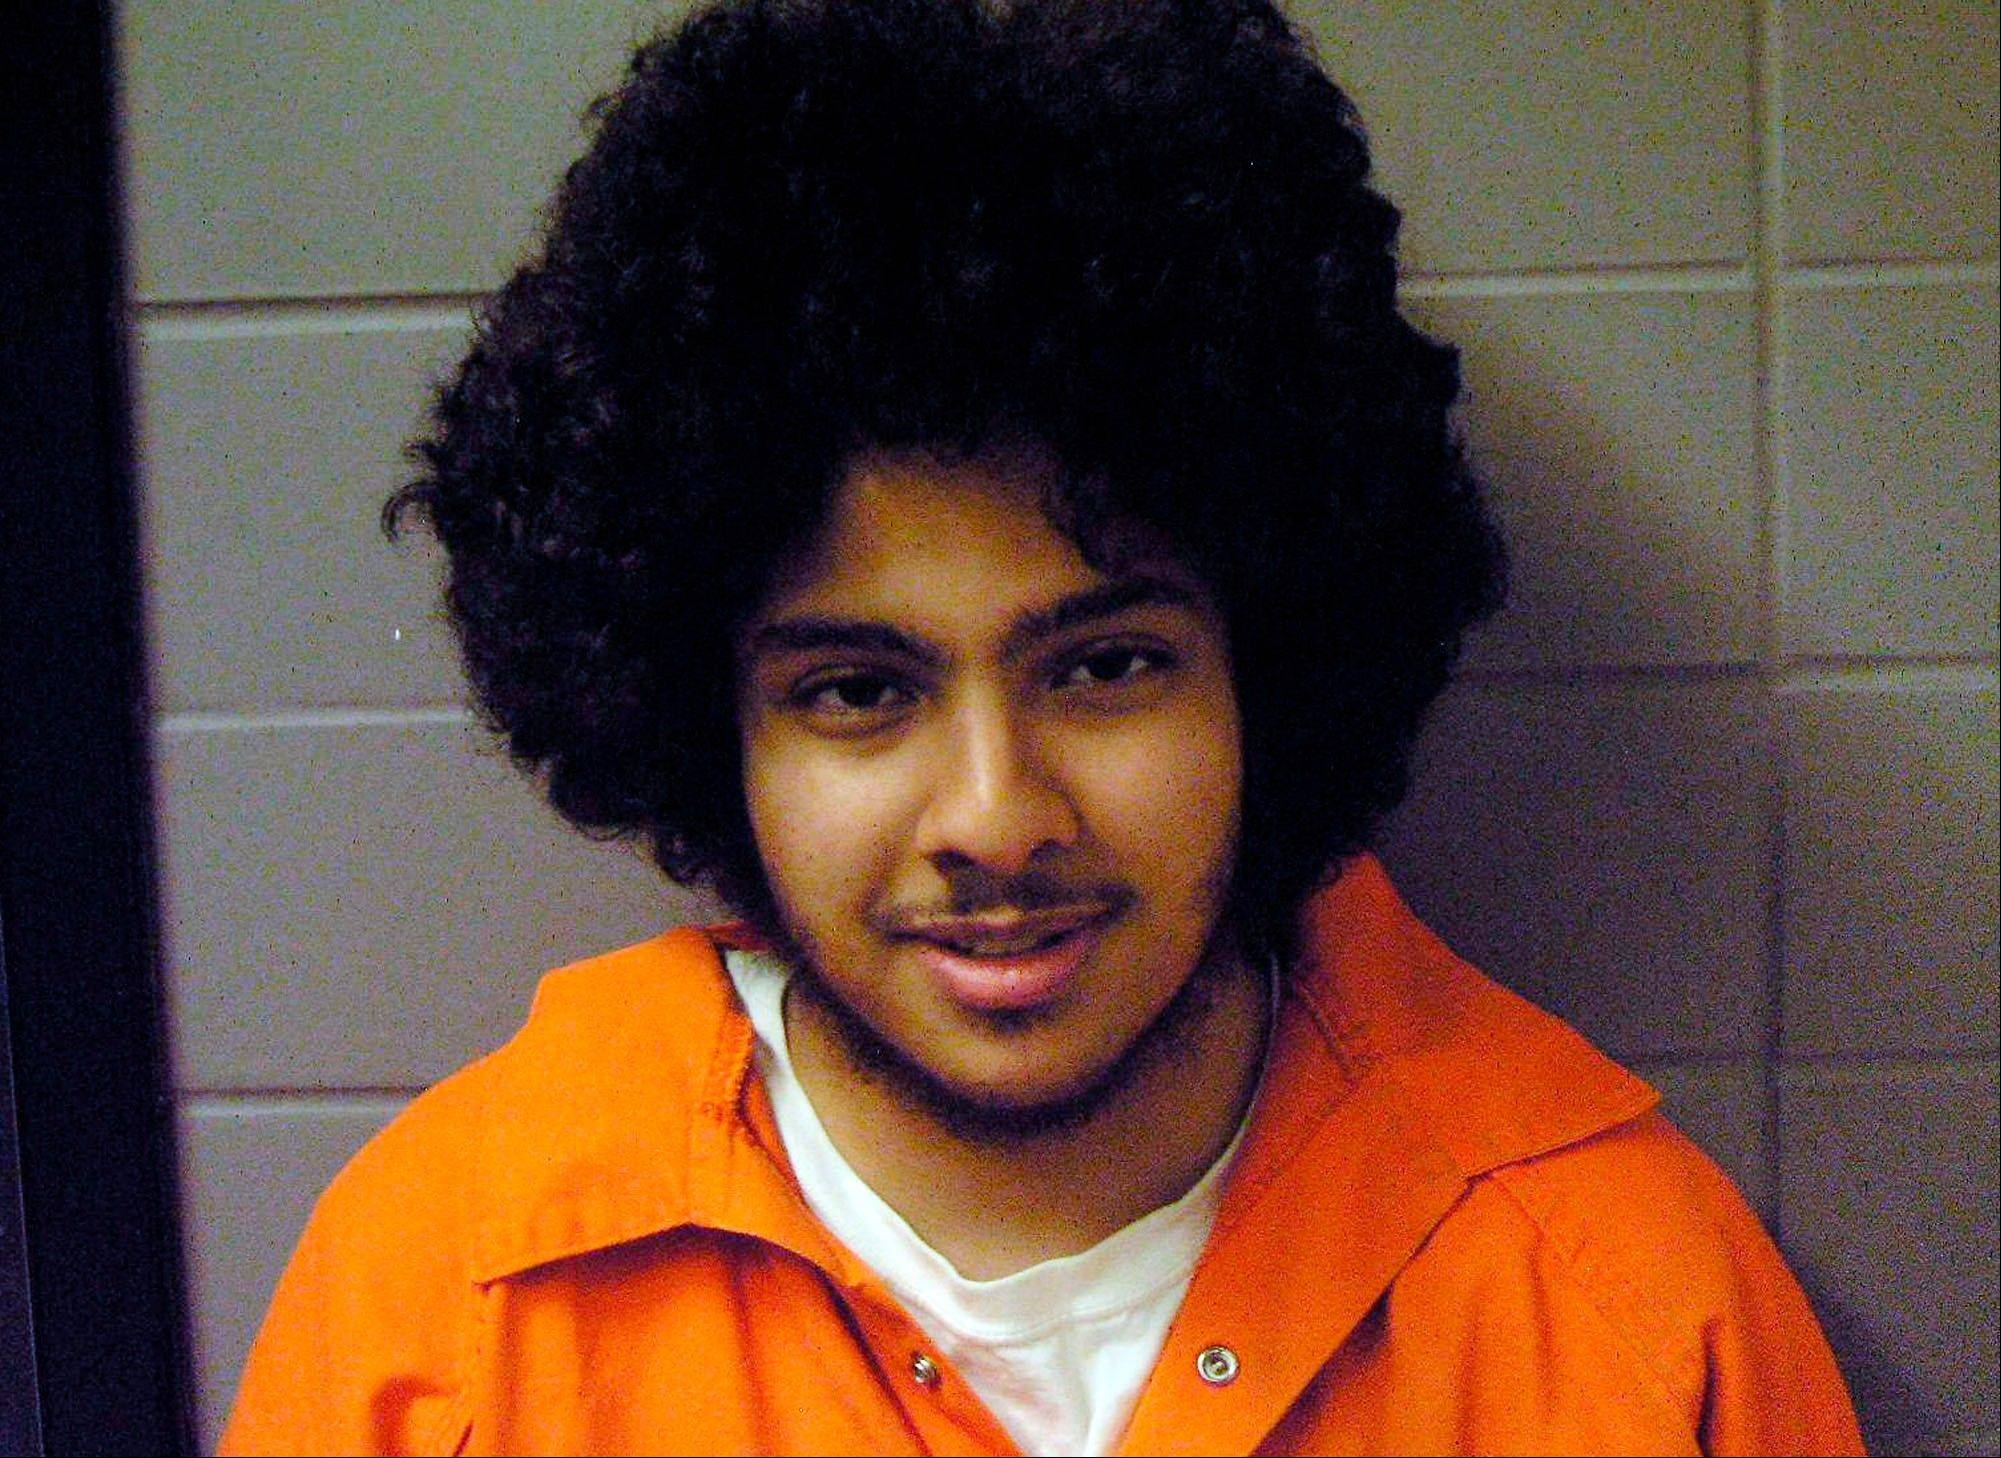 Terrorism suspect asks judge to vacate key ruling